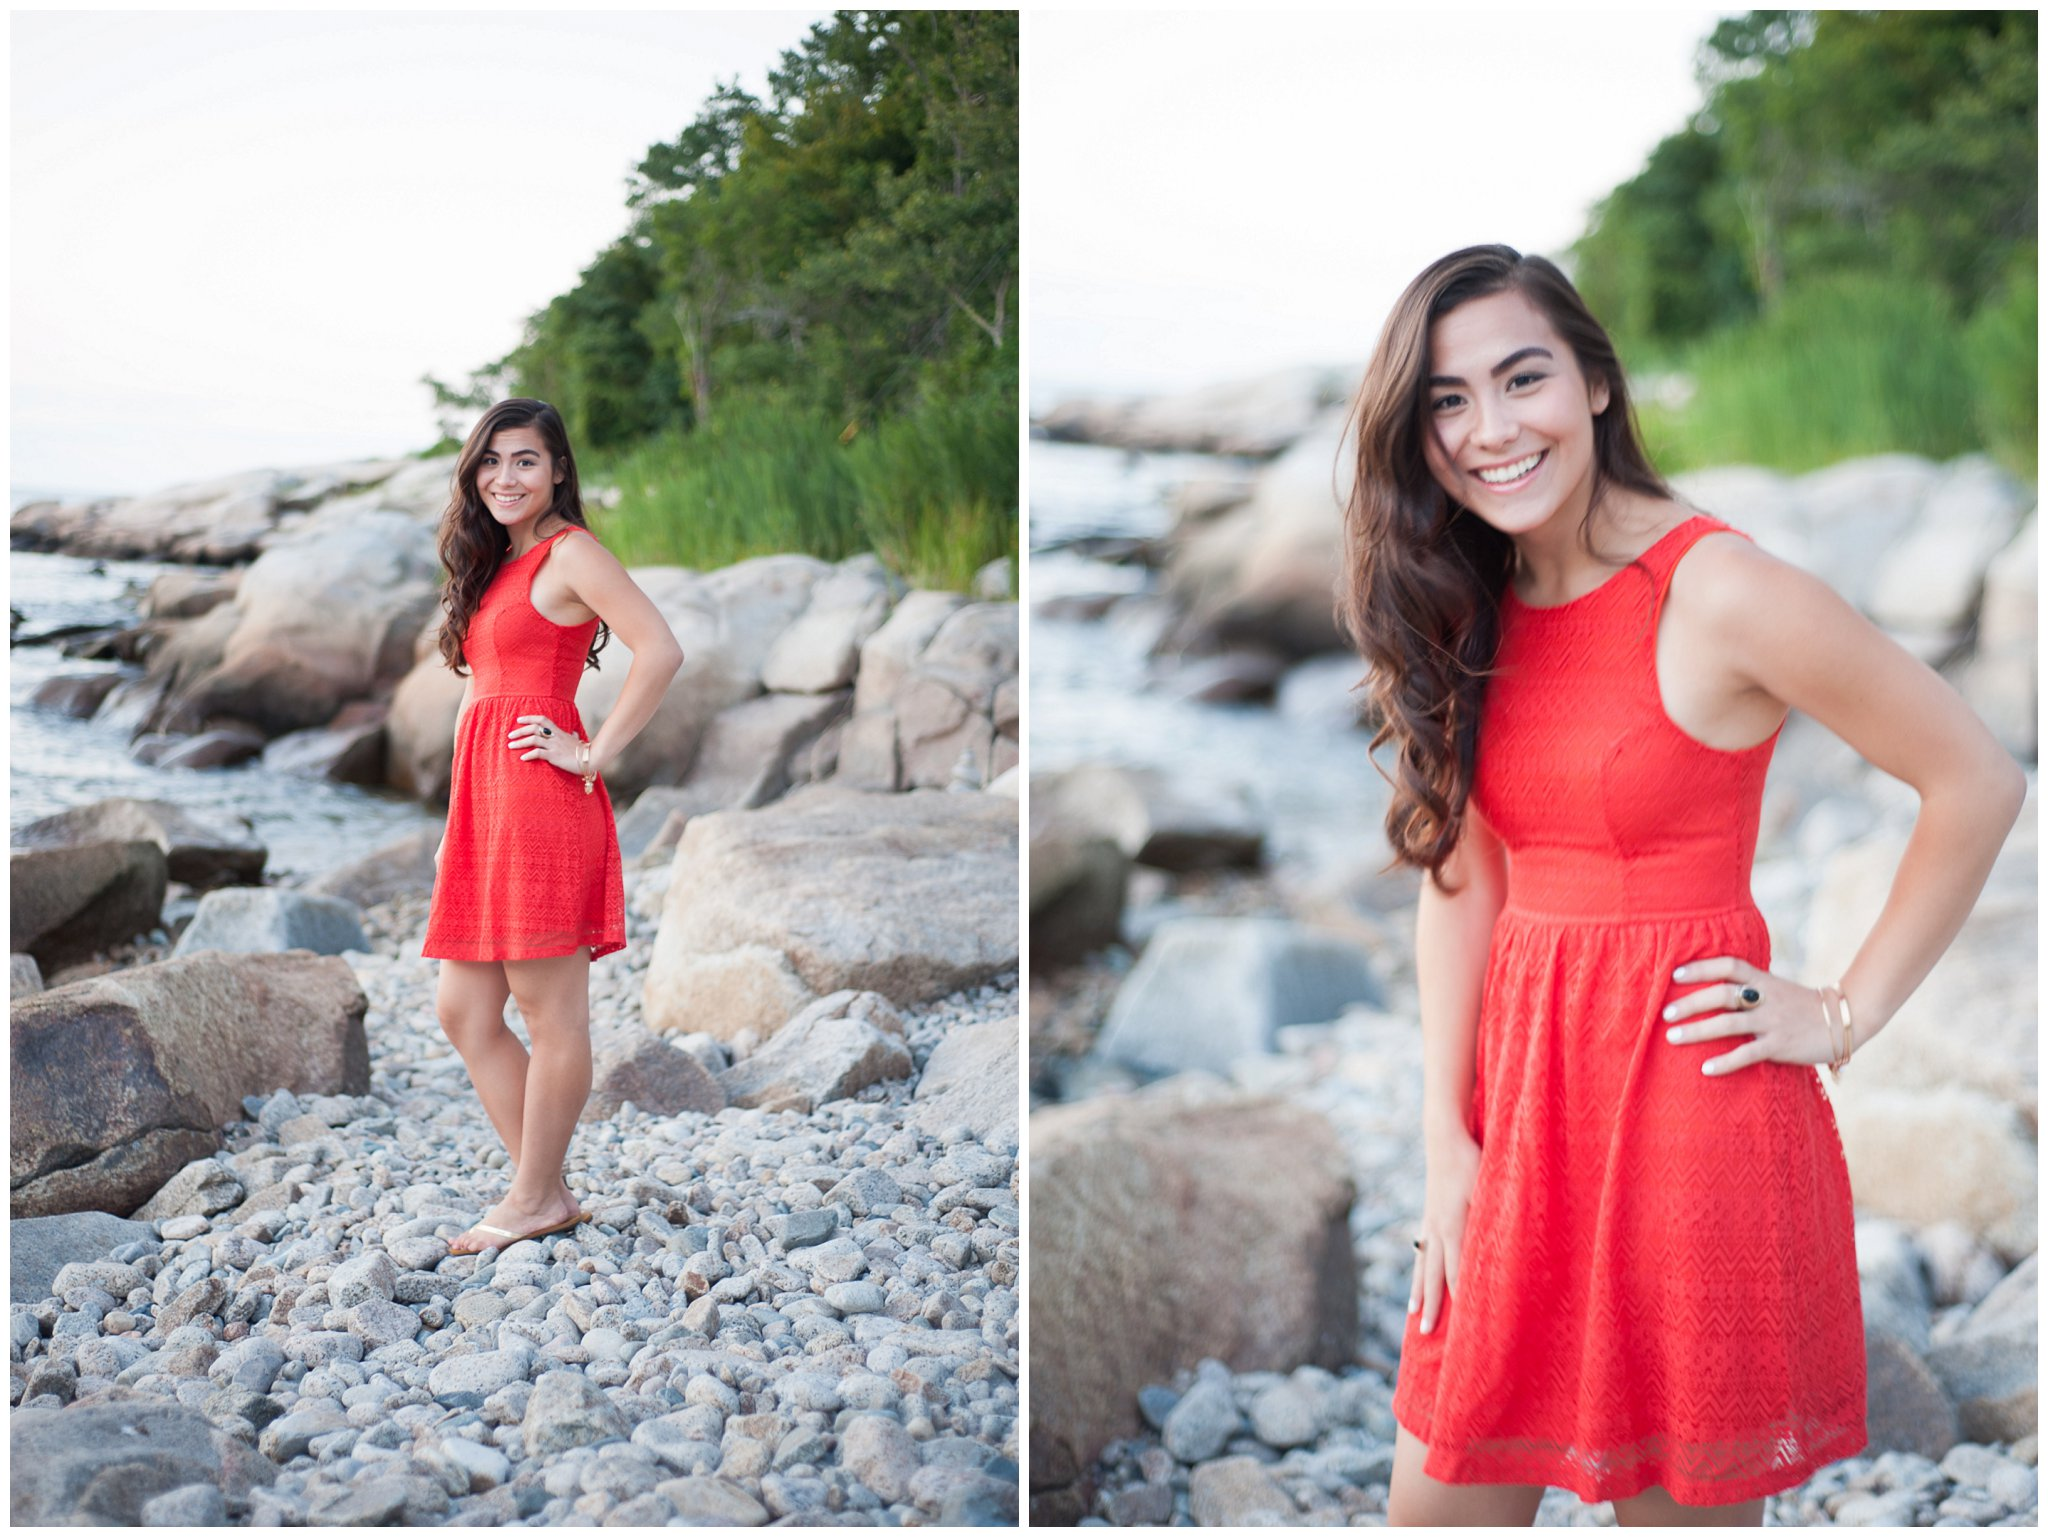 Classic Coastal New England HS Senior Portrait Photographer Massachusetts